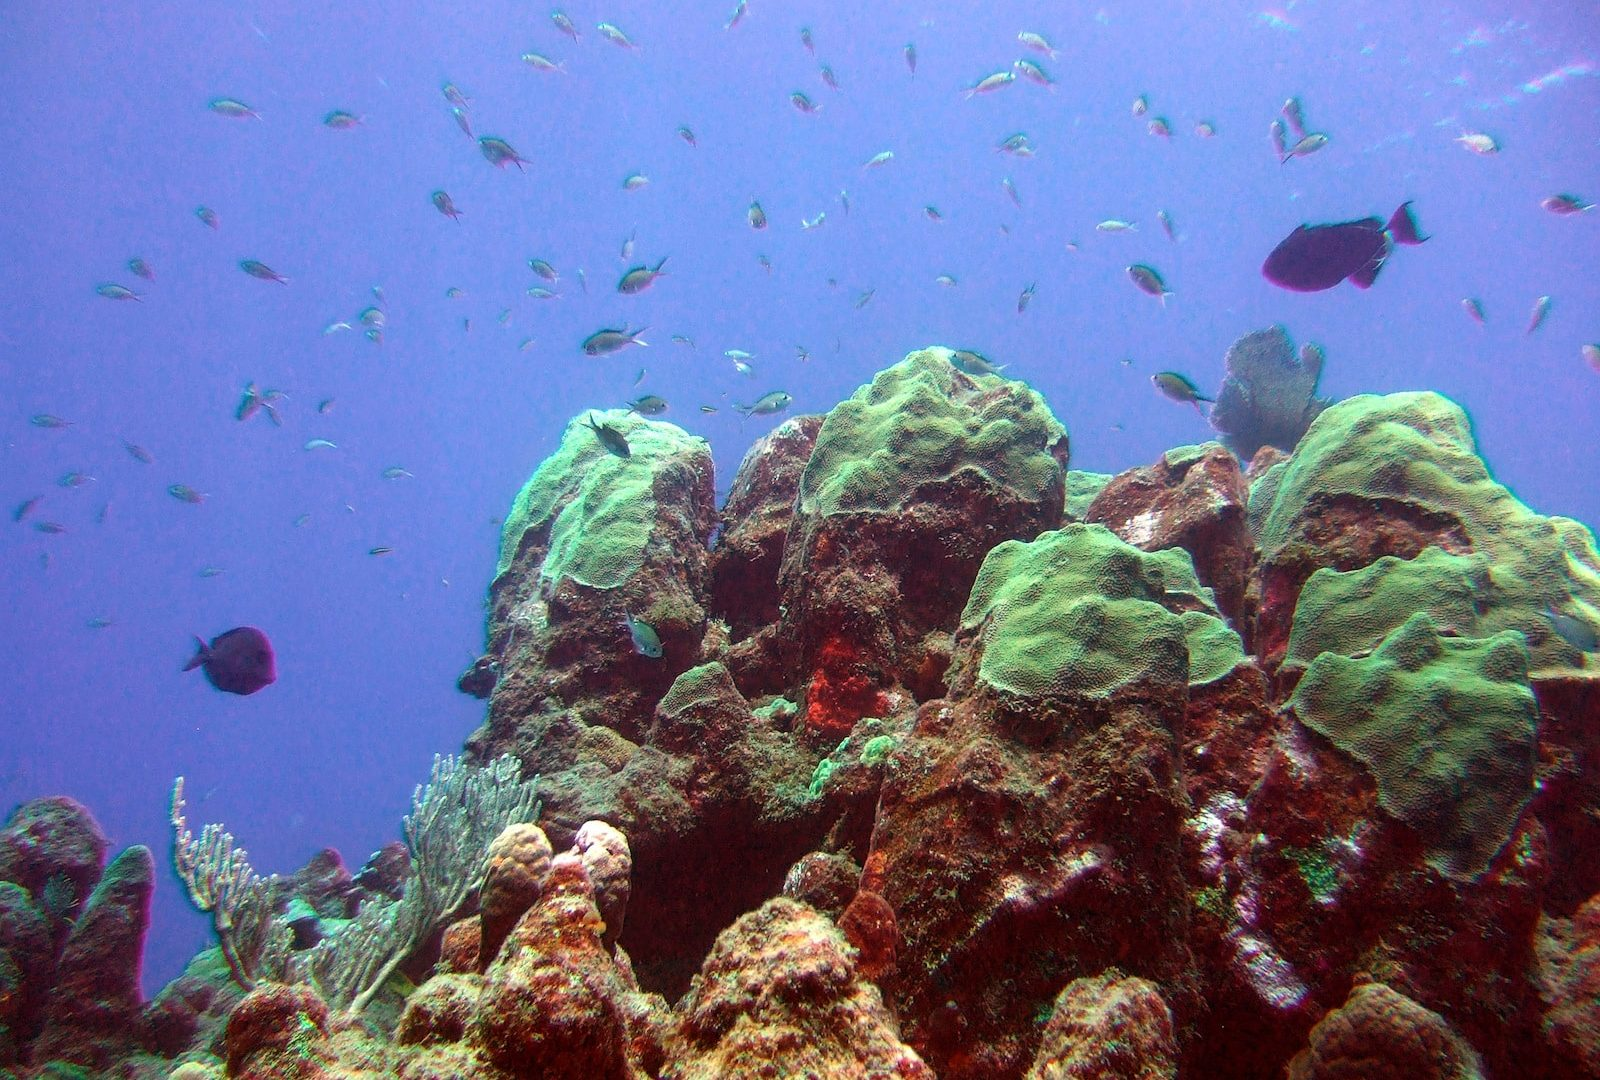 Rinsing protocol for dive gear used at dive sites with diseased corals